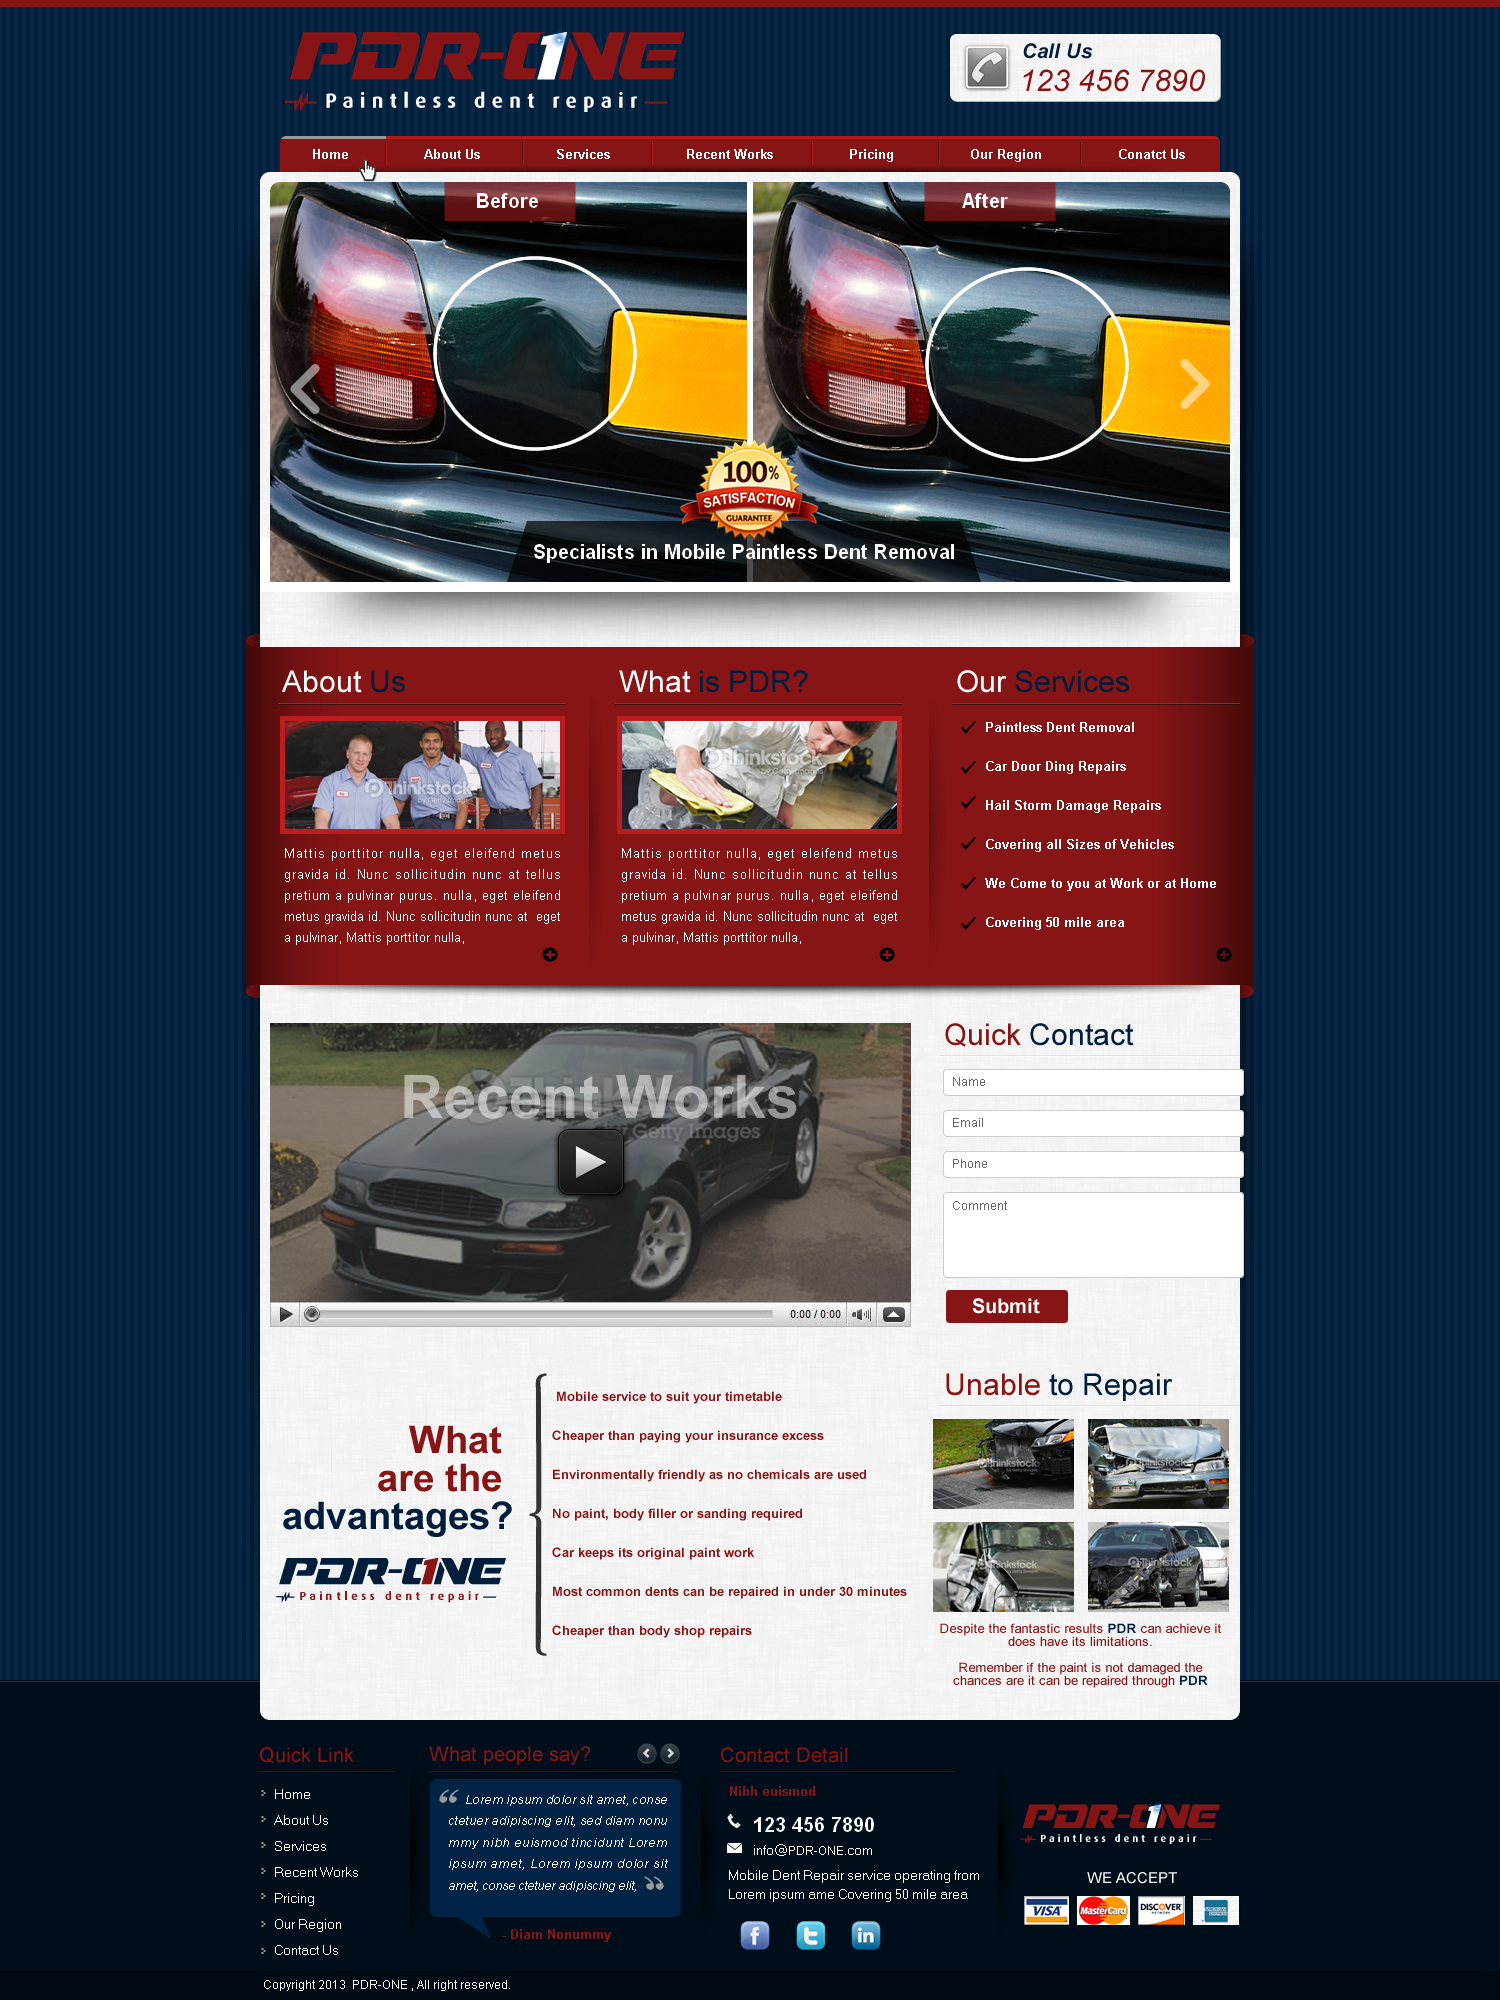 PDR-0NE Web page - Automotive